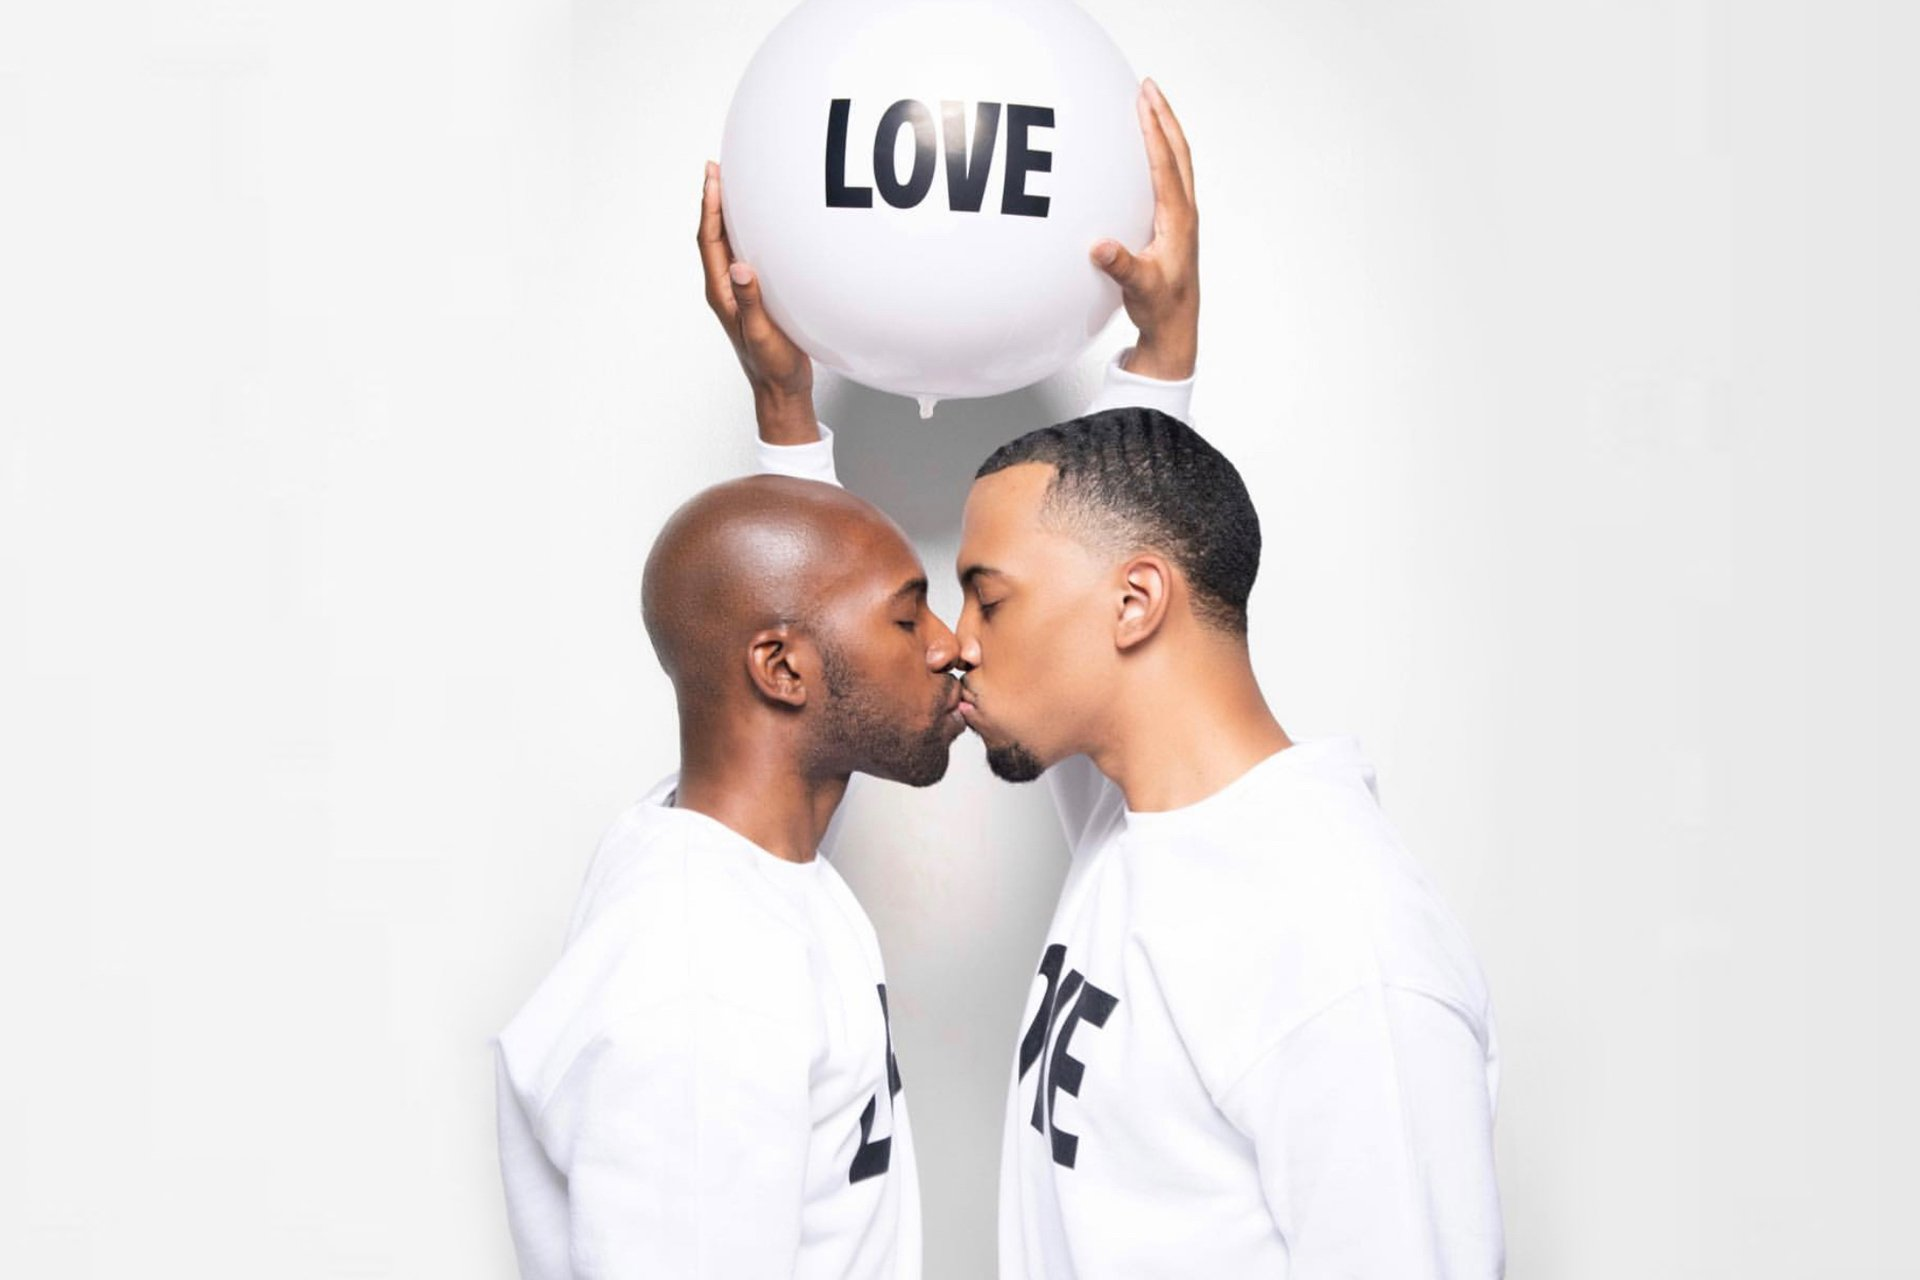 Married black gay couple Terrell and Jarius @terrell.and.jarius